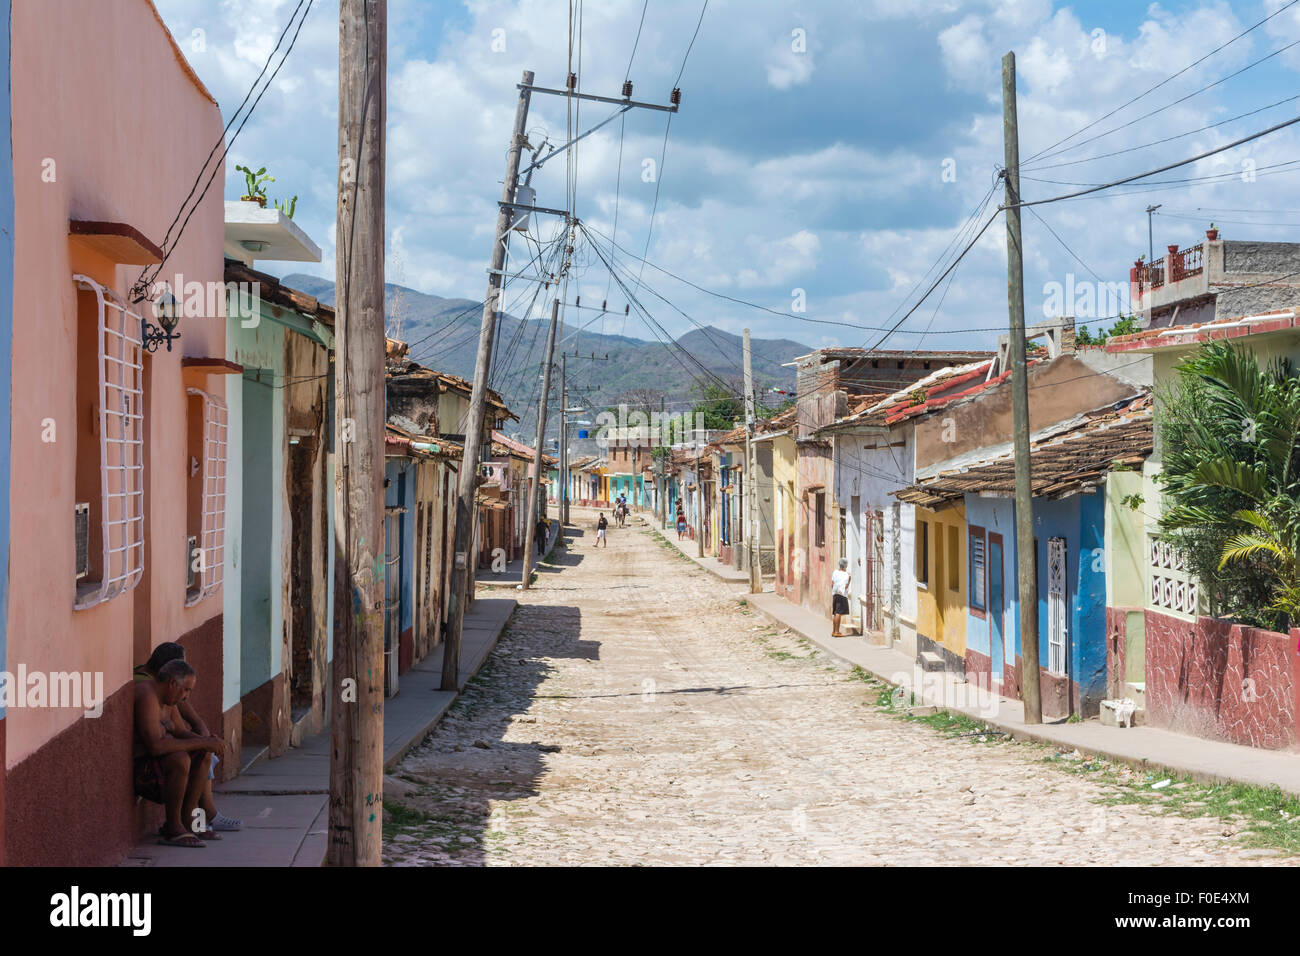 Buildings in Trinidad, Cuba - Stock Image